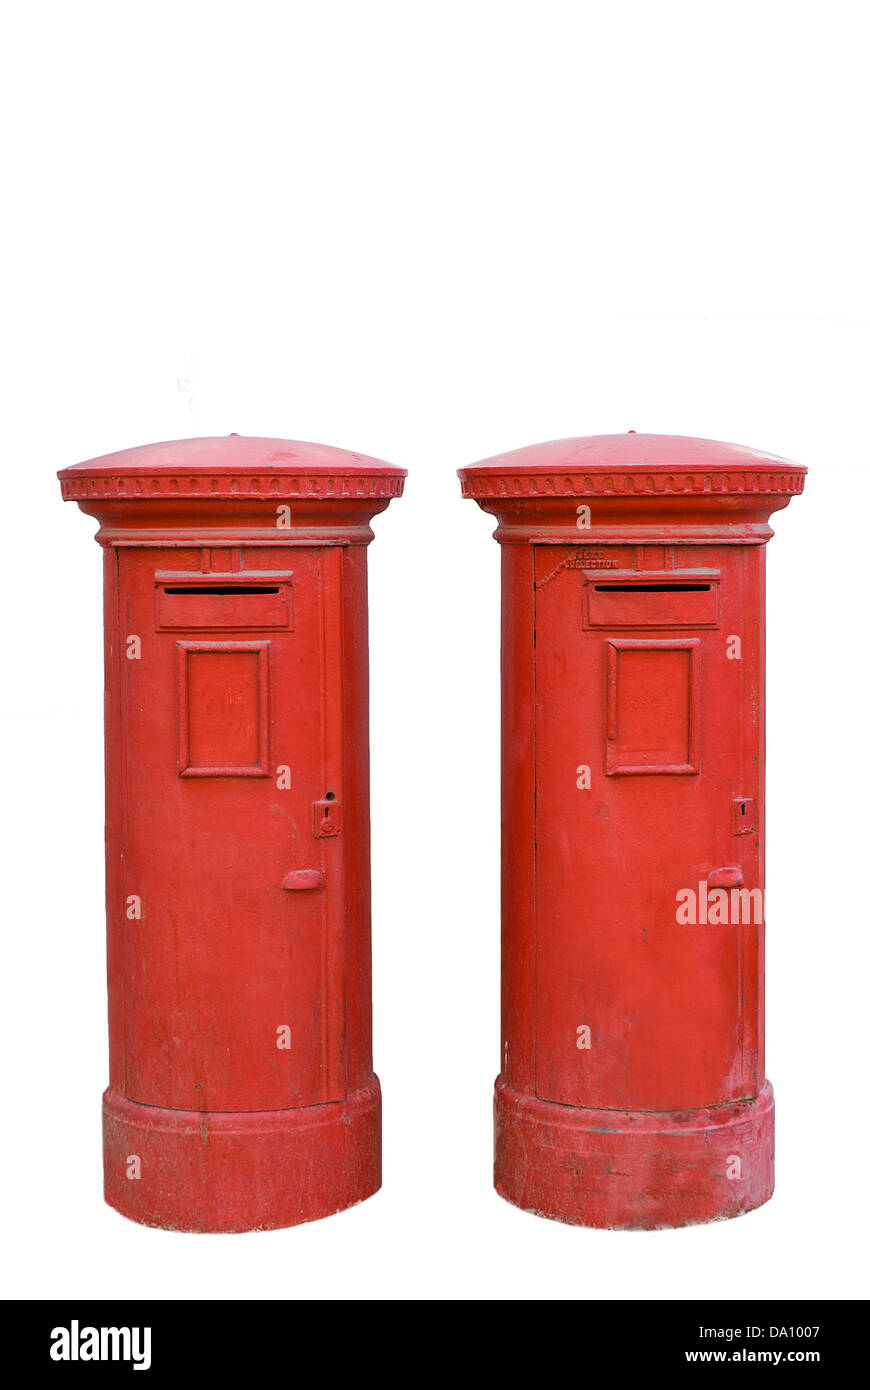 Two red mailboxes in a city of Israel - Stock Image